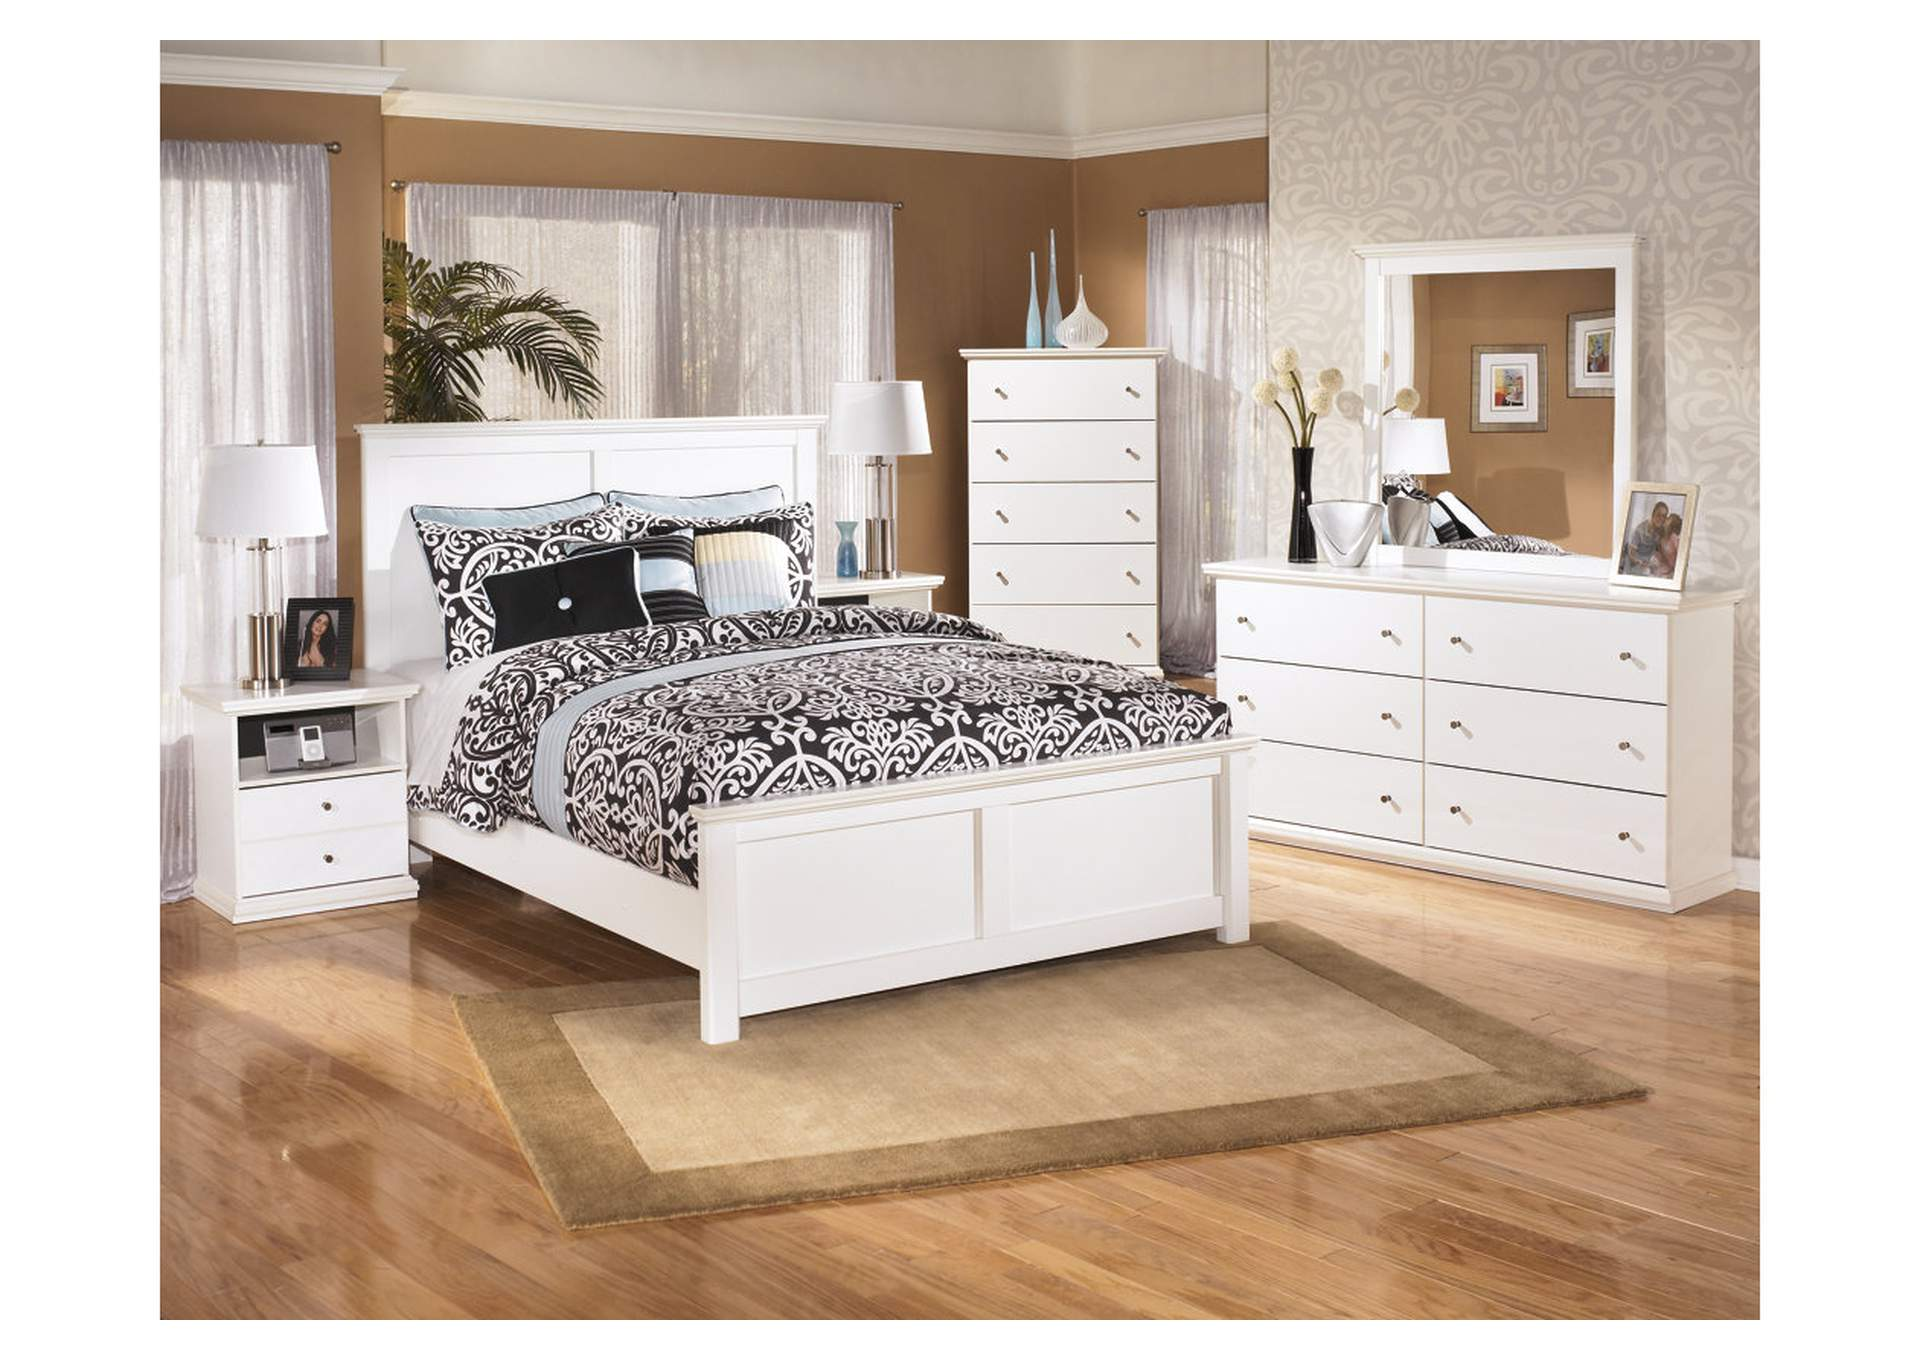 Bostwick Shoals King Panel Bed, Dresser & Mirror,Signature Design By Ashley